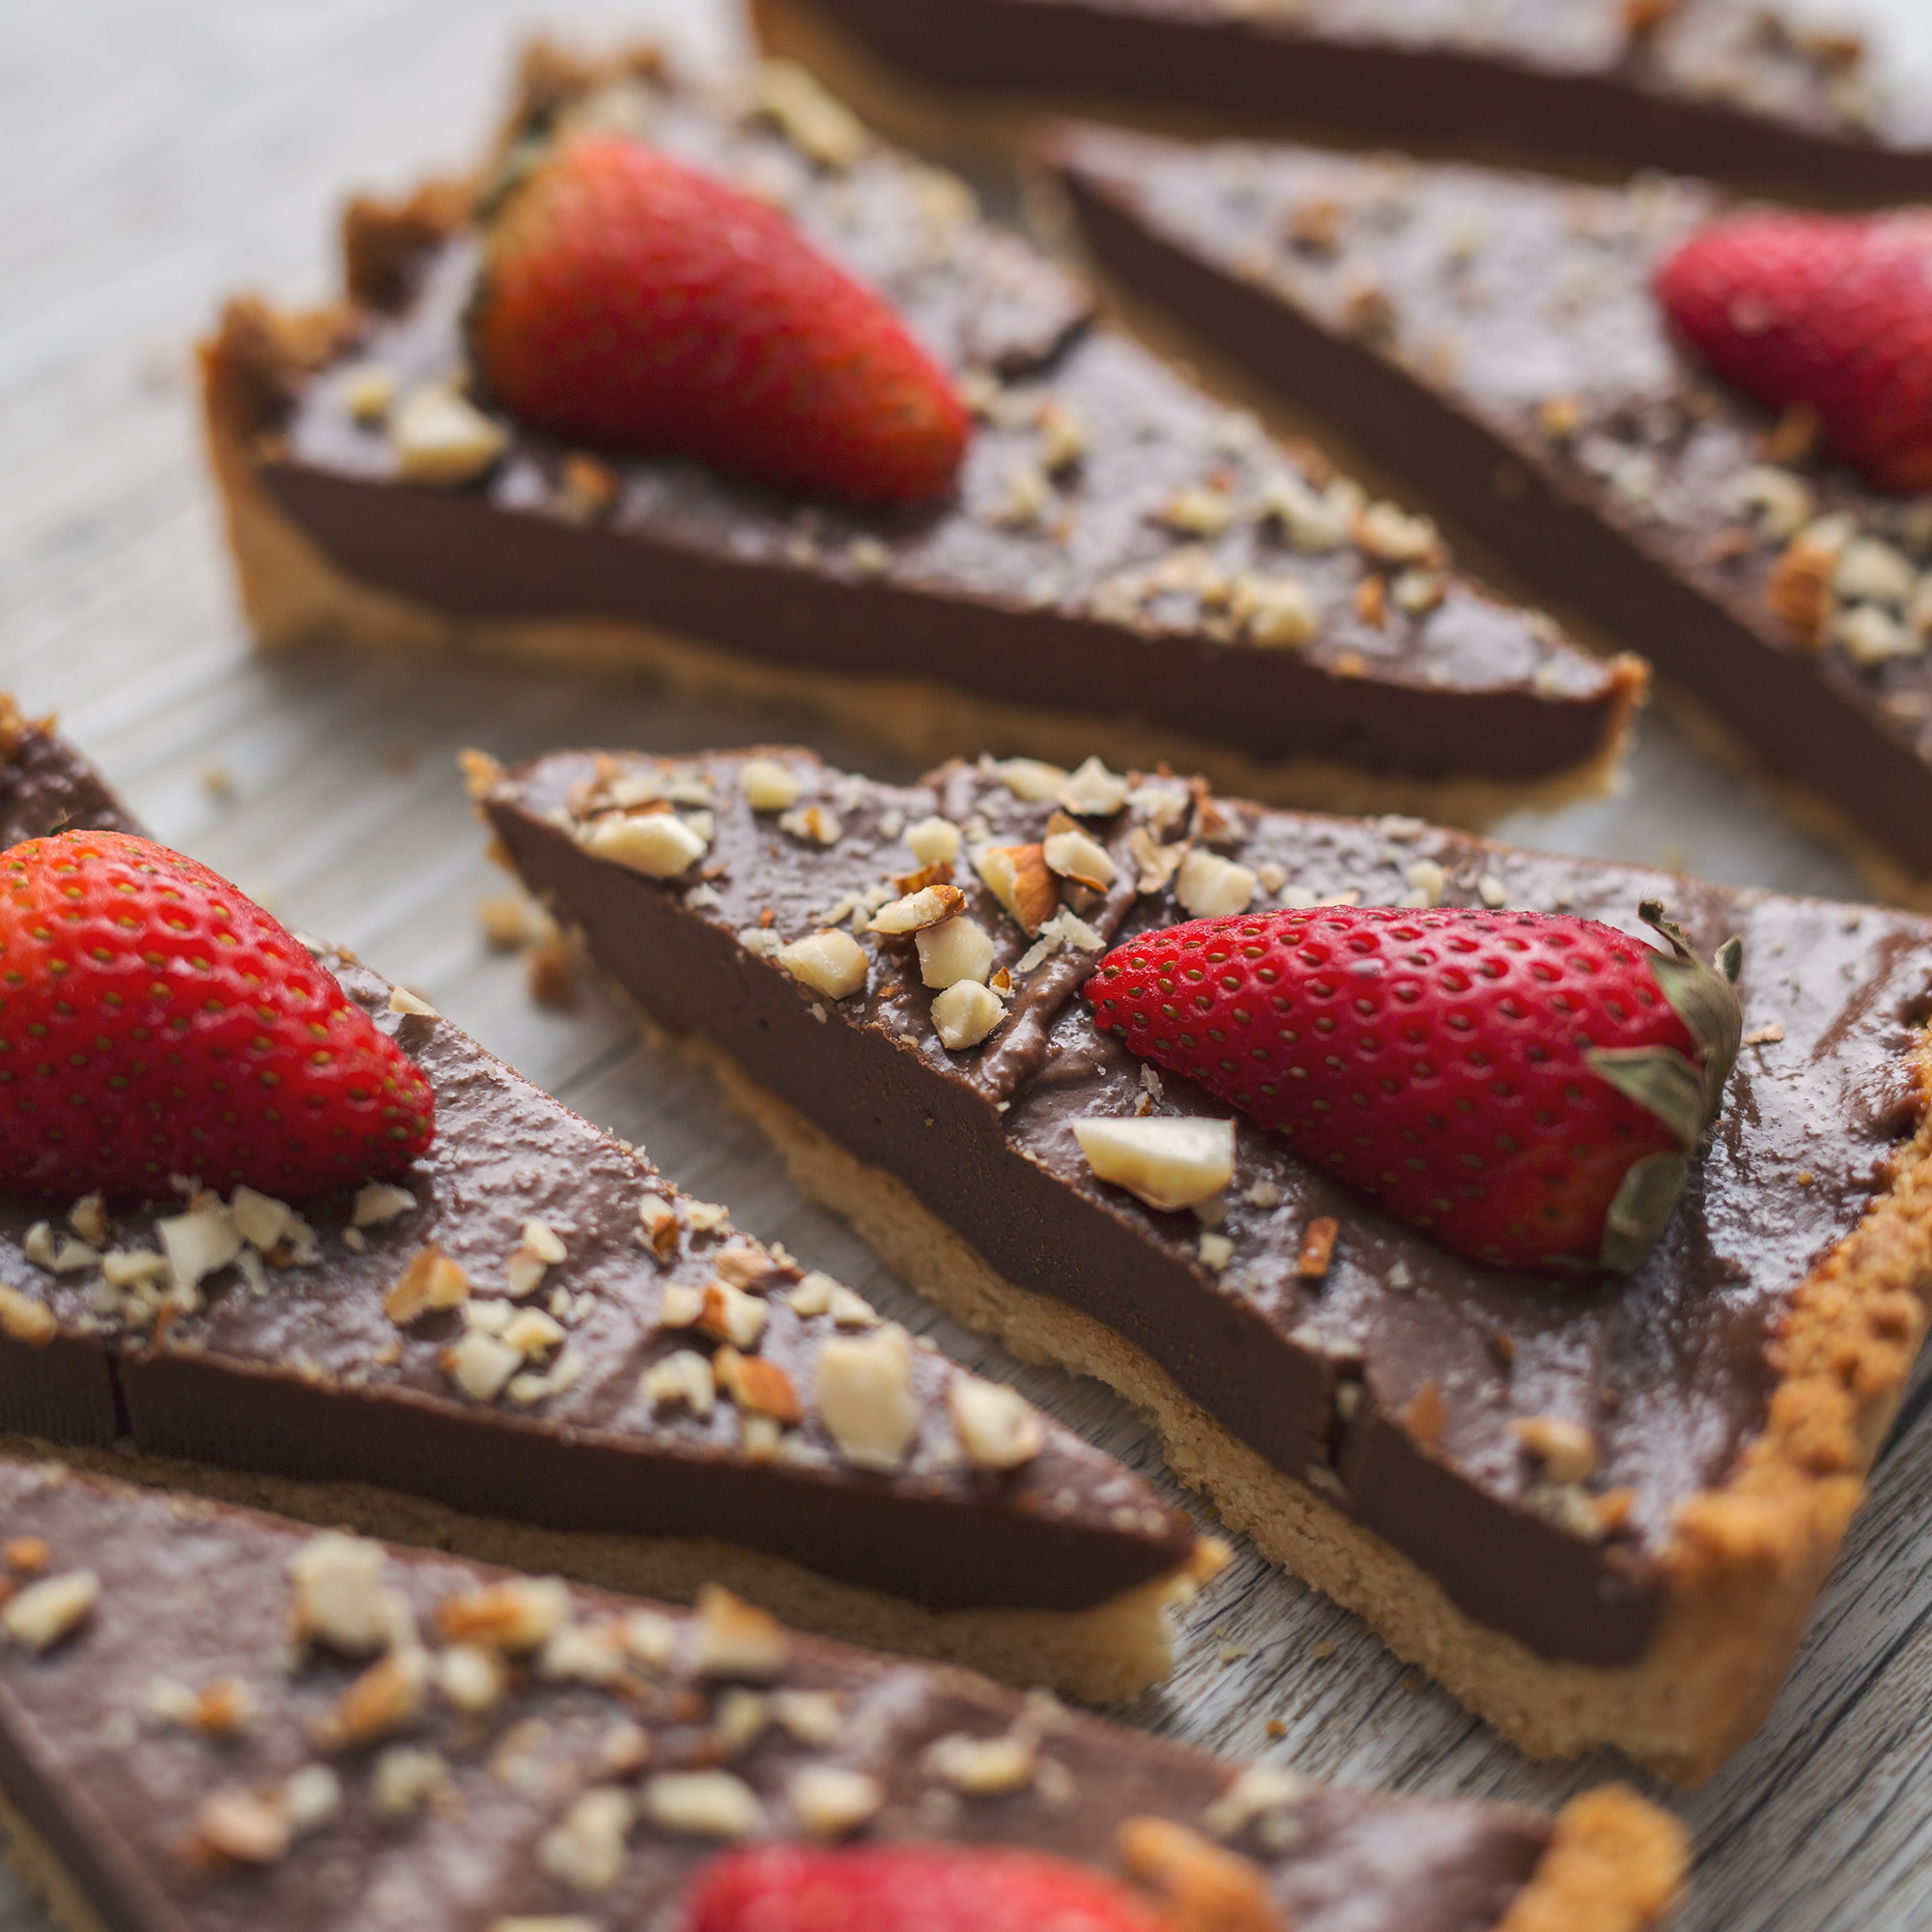 Vegan Chocolate Ganache Tart